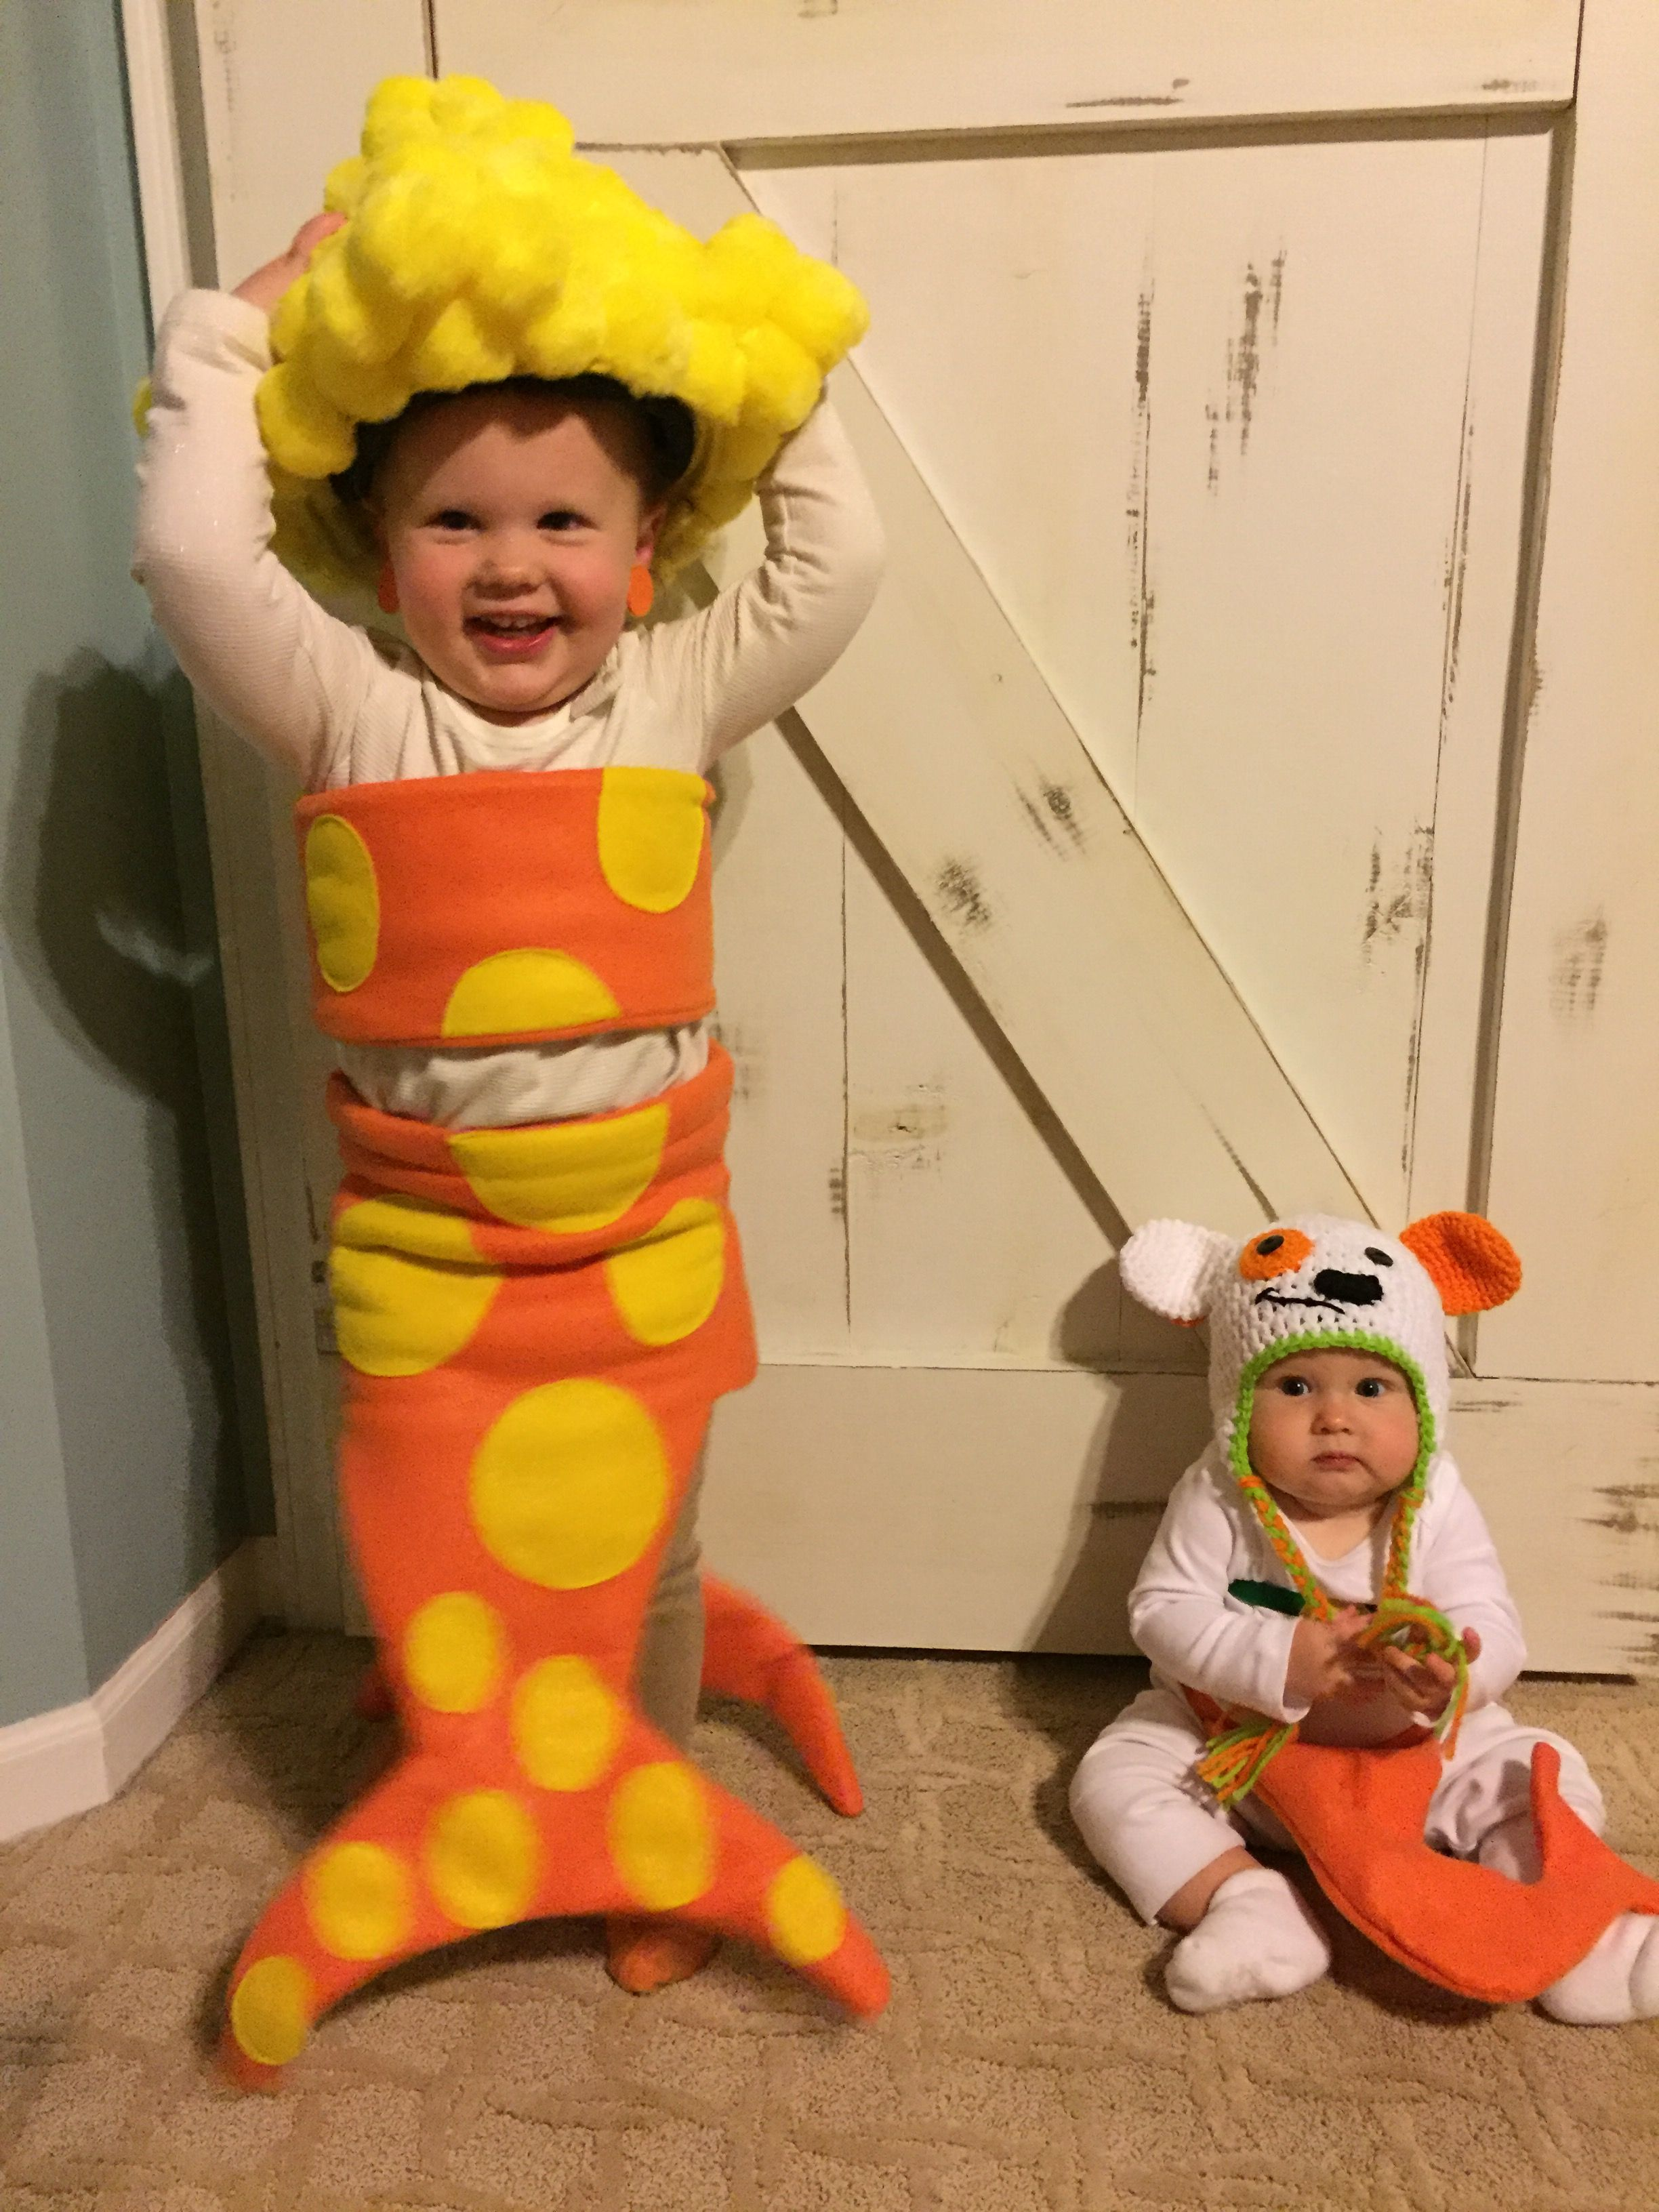 Bubble Guppies Costume : bubble, guppies, costume, Bubble, Guppy,, Puppy, Halloween, Costume, Guppies, Costume,, Costumes,, Toddler, Costumes